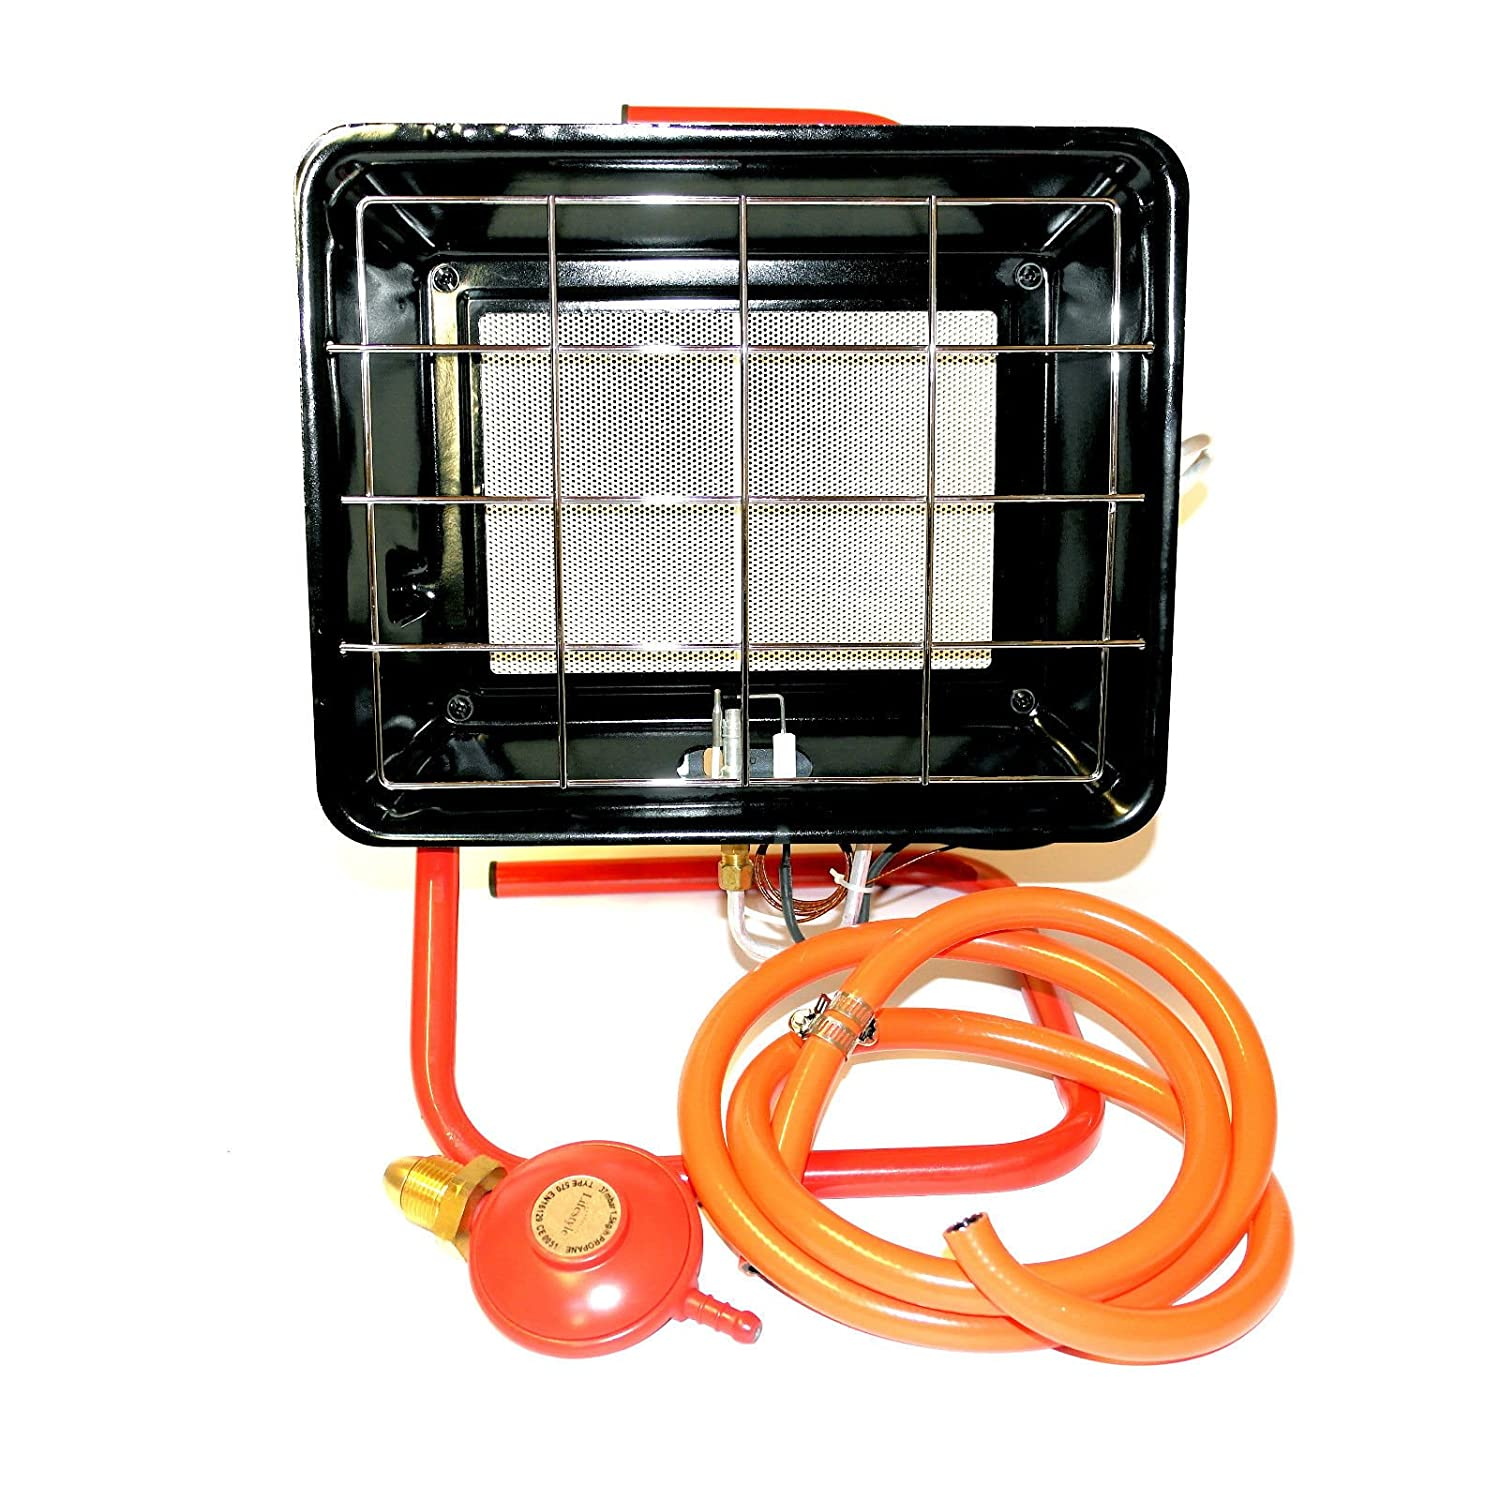 Lifestyle 3.5kw Workshop Site Gas Heater With Pilot Flame Fail Safety Device & ignition